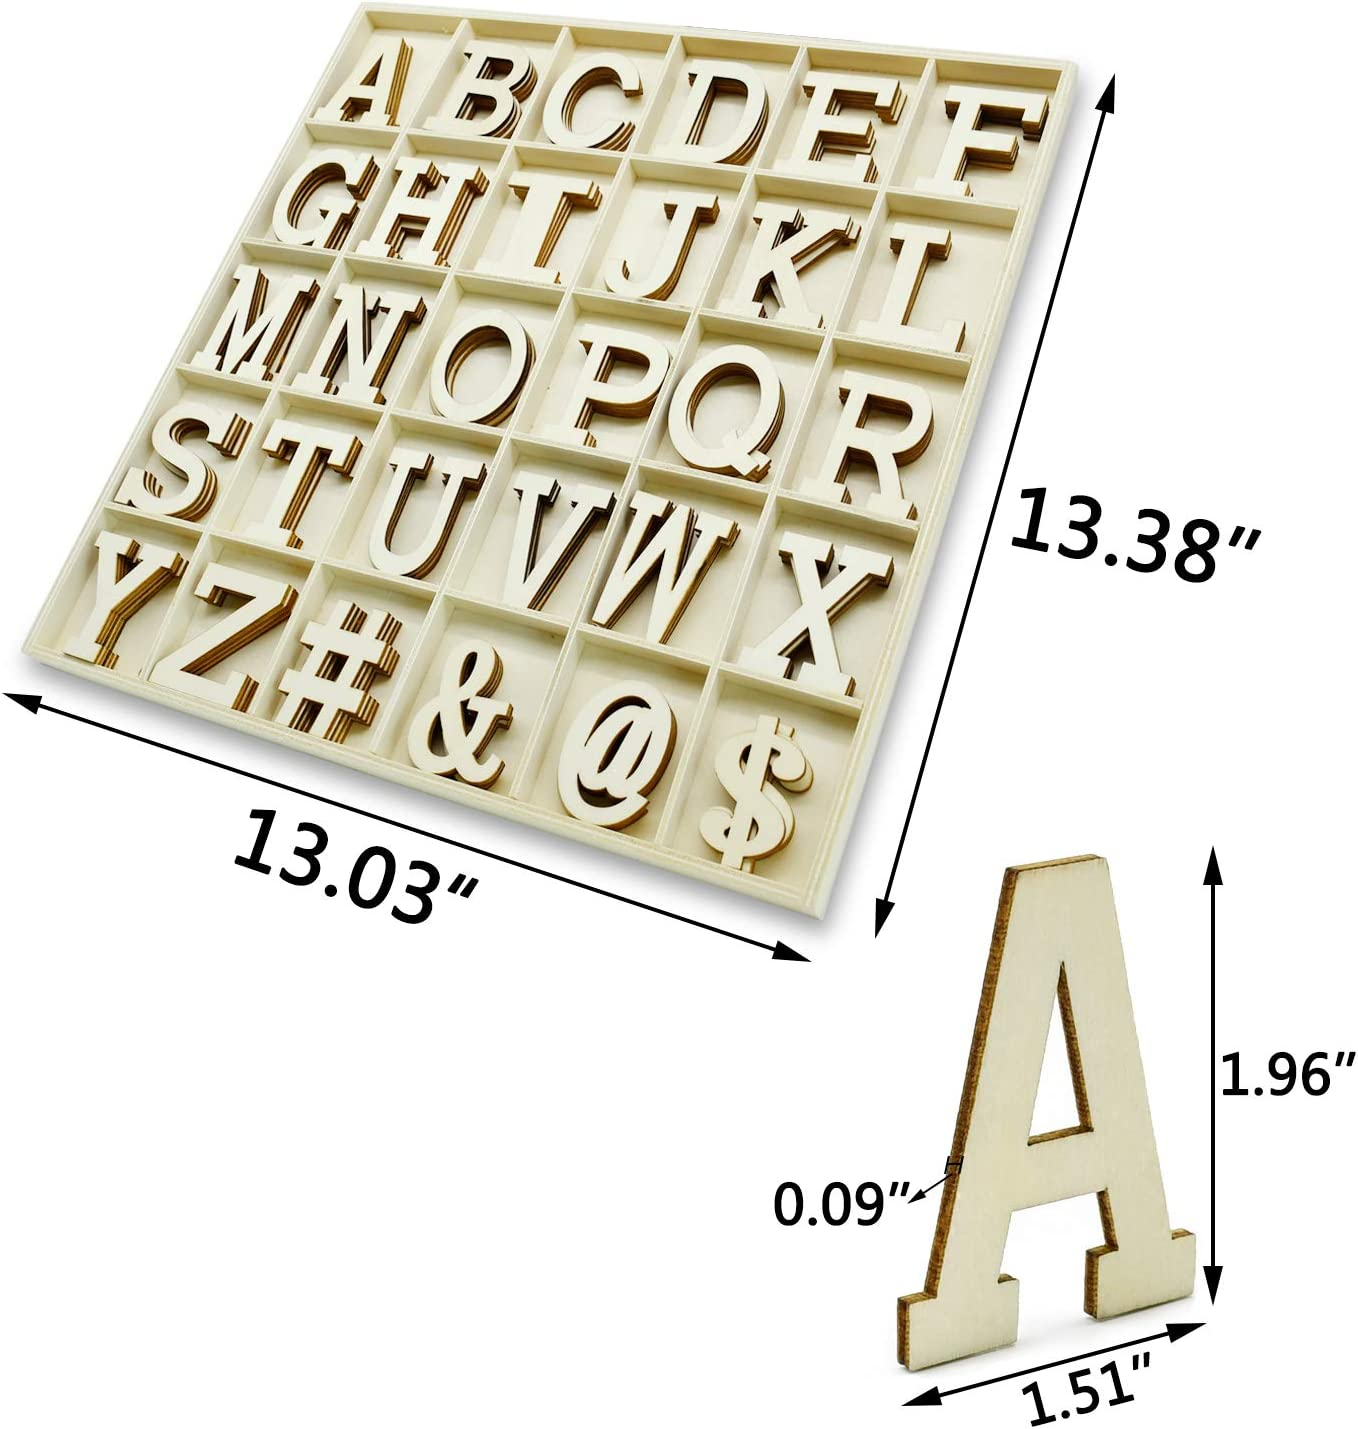 ,Wooden Alphabet Crafting Letters Set,260 Pcs Small Unfinished Capital Letters for DIY Signs Labels Kids Crafts /¡/ A-Z 10 Packs of